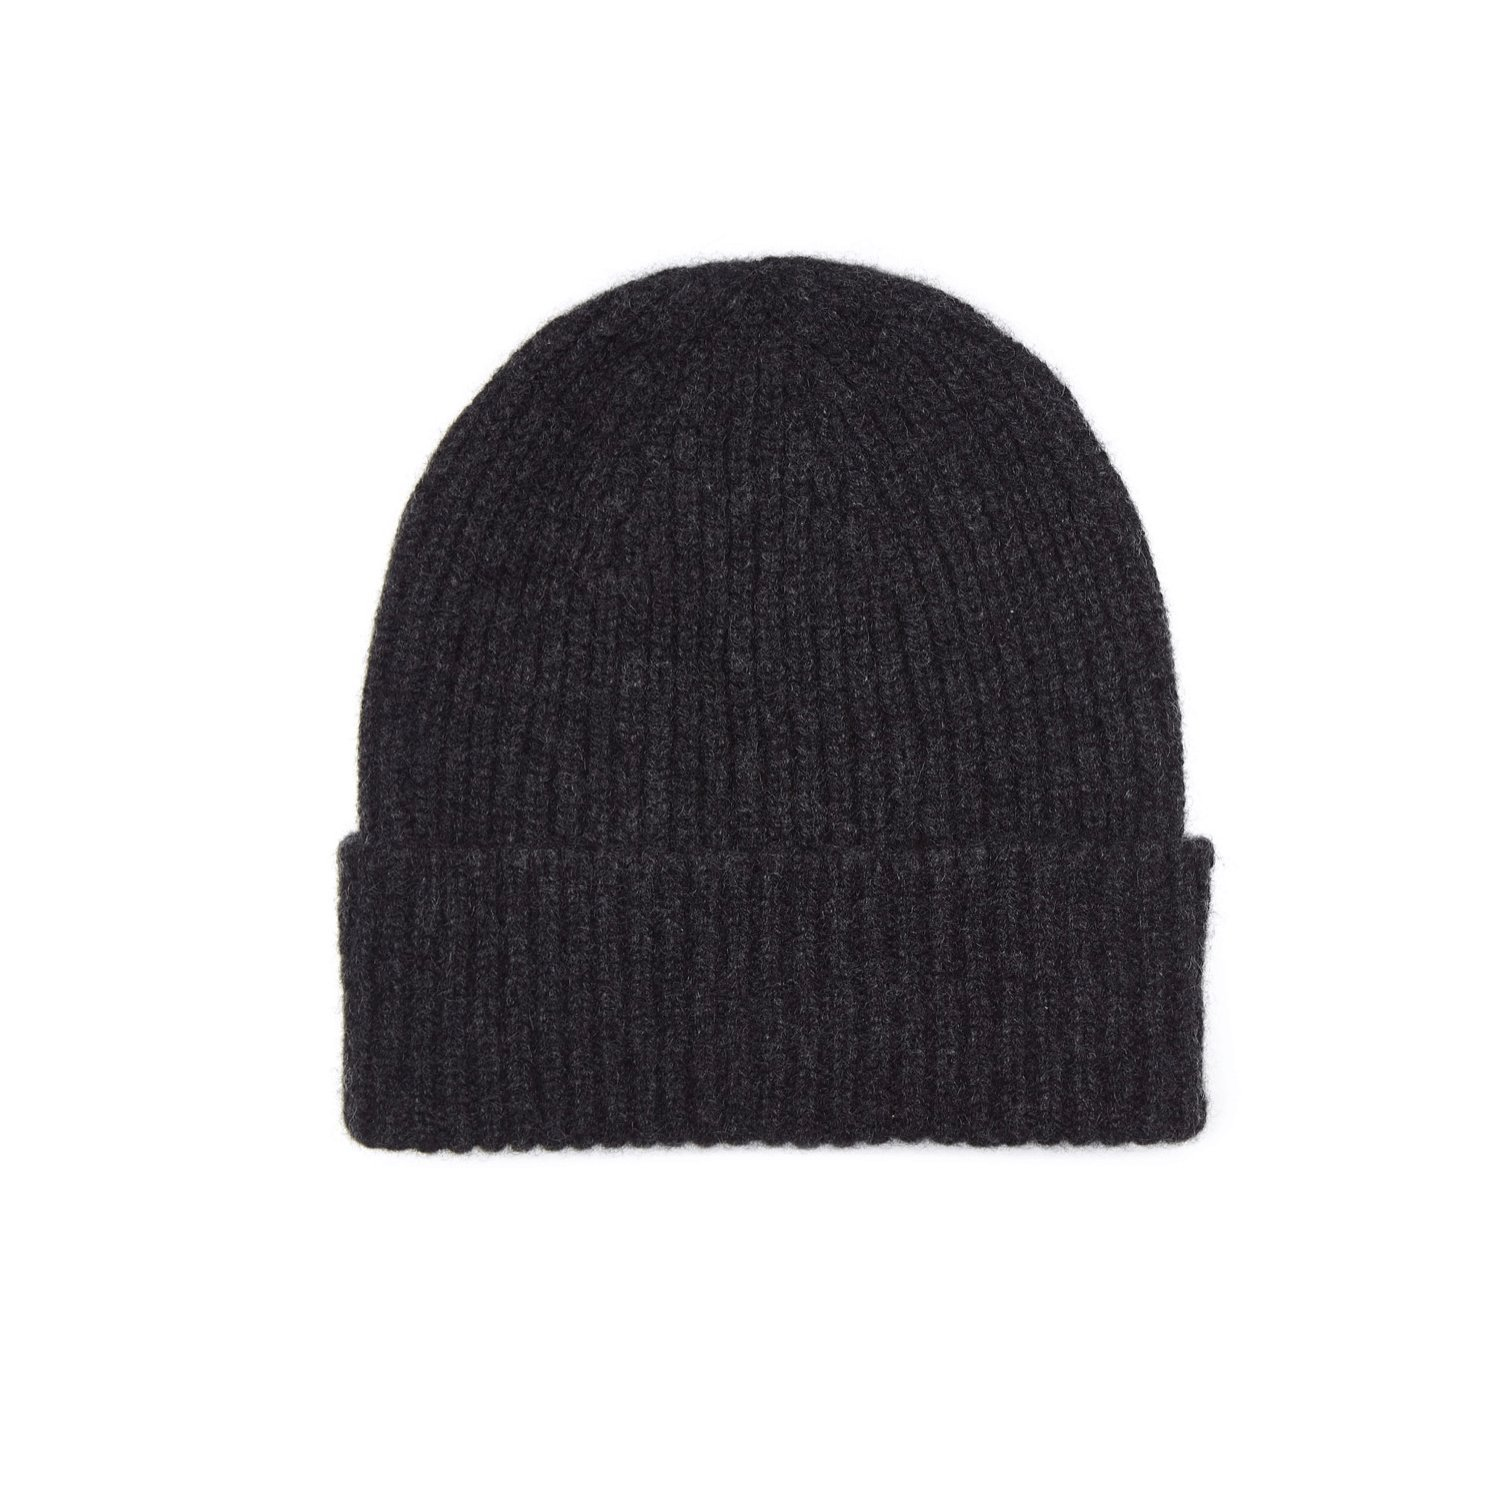 100% Cashmere Unisex Beanie Hat by Lona Scott | Made in Scotland Navy